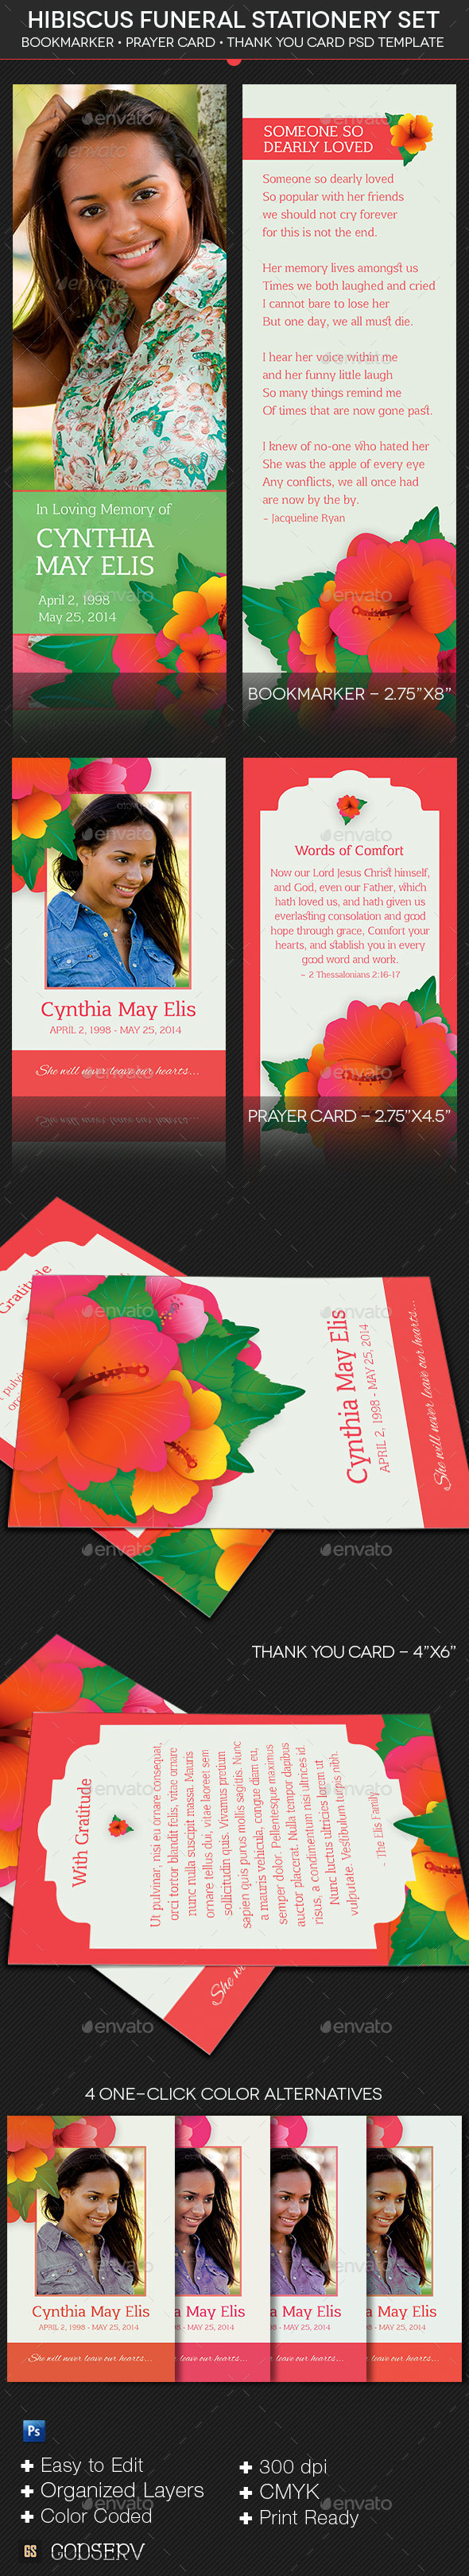 GraphicRiver Hibiscus Funeral Stationery Template Set 10074328